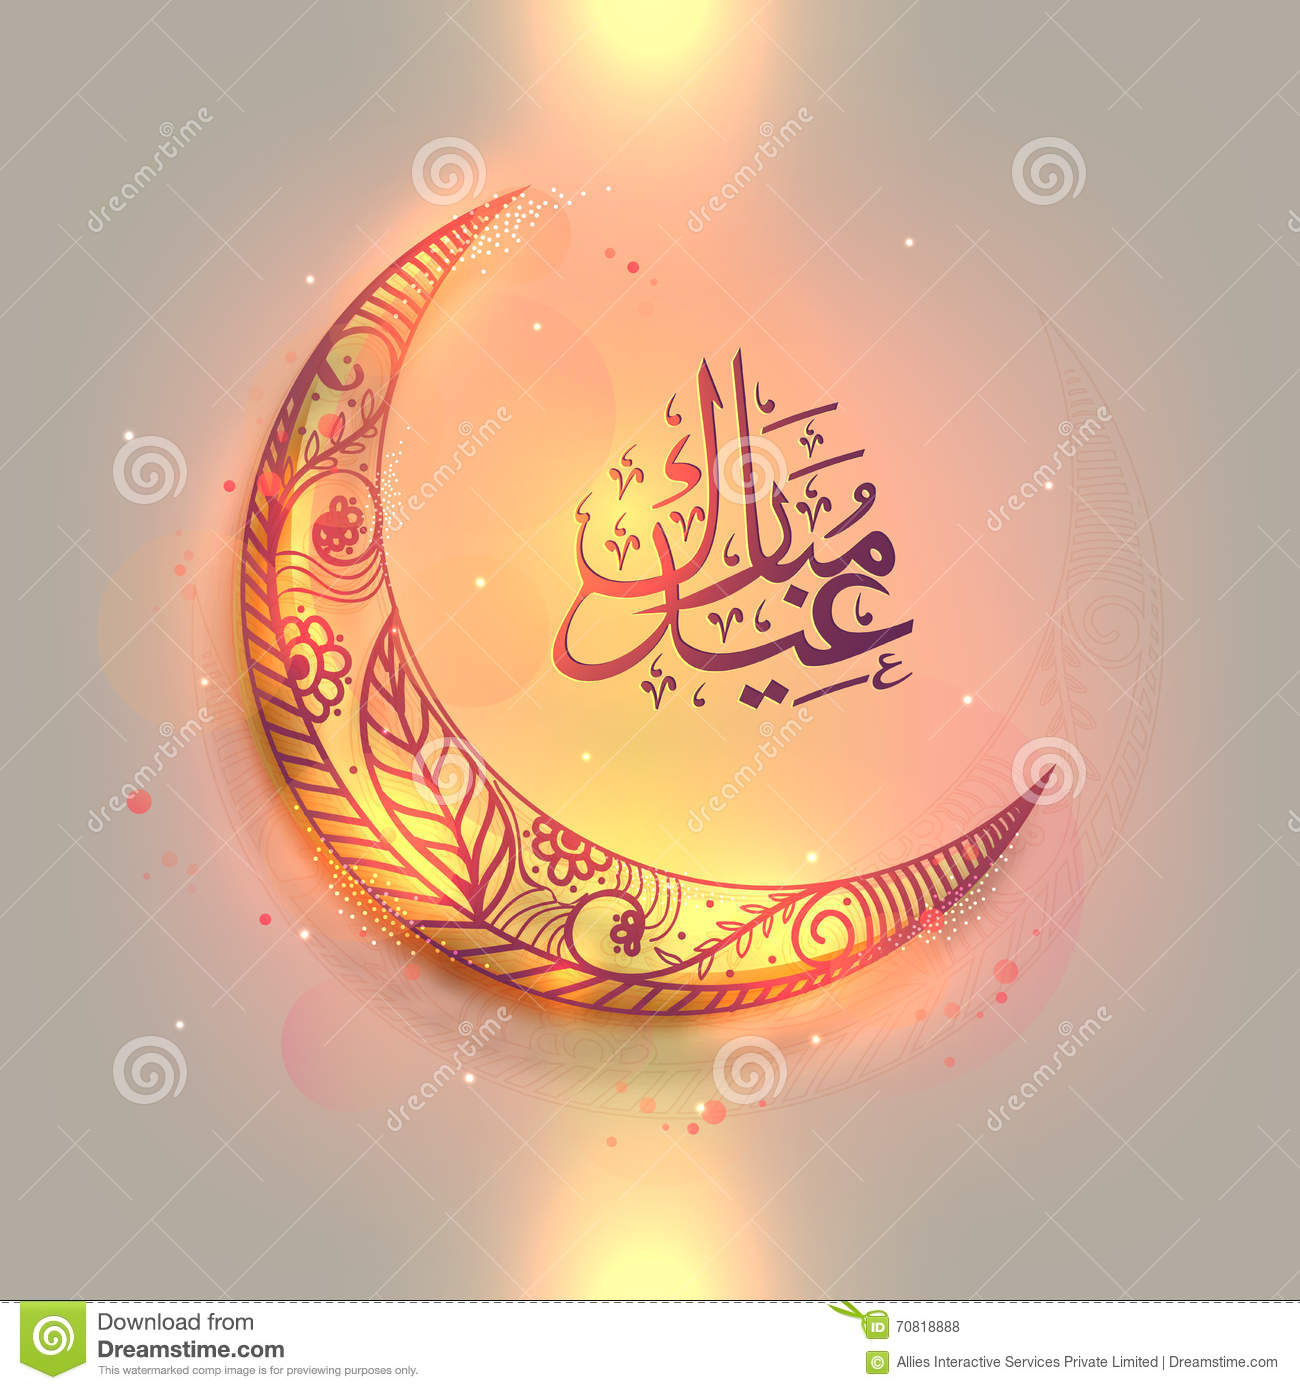 Crescent moon with arabic calligraphy for eid mubarak